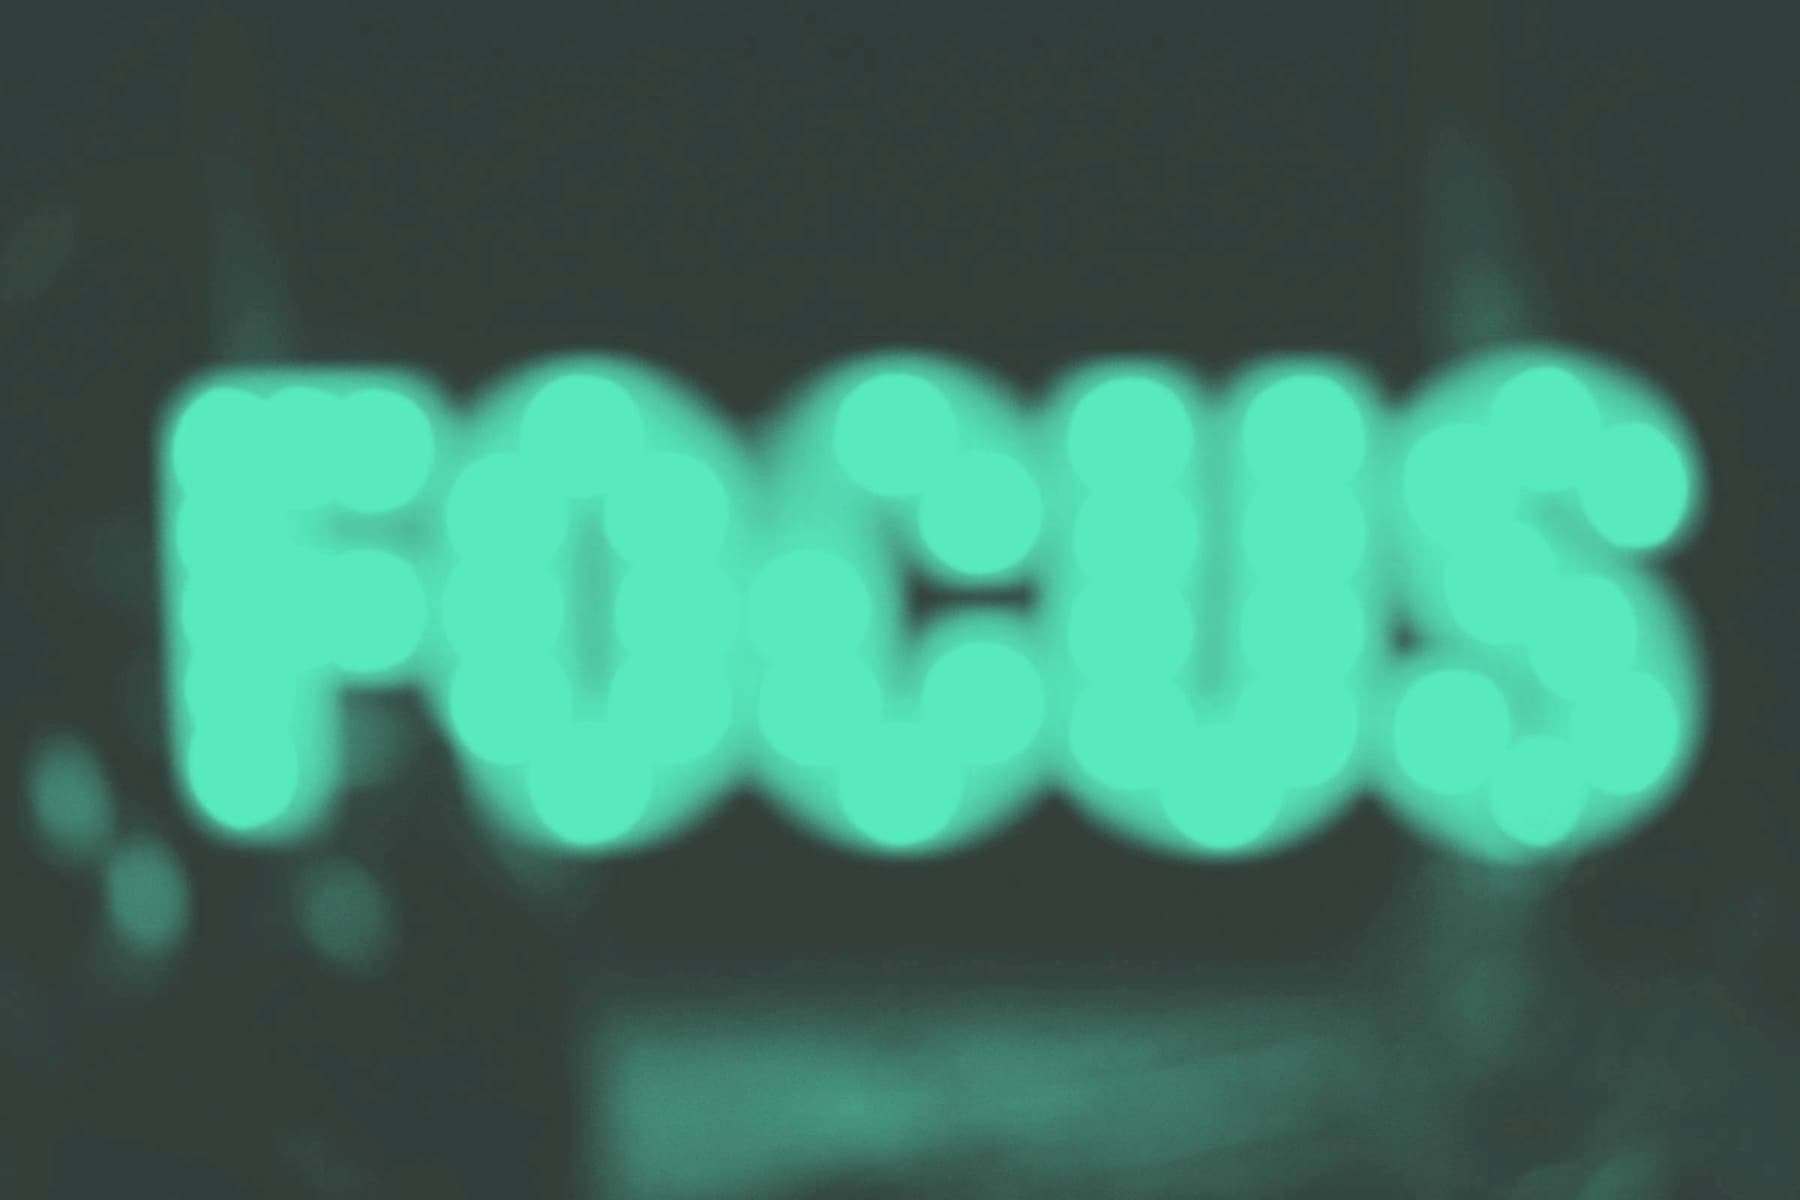 A blurry image of the word 'focus' in green in front of a dark grey backdrop